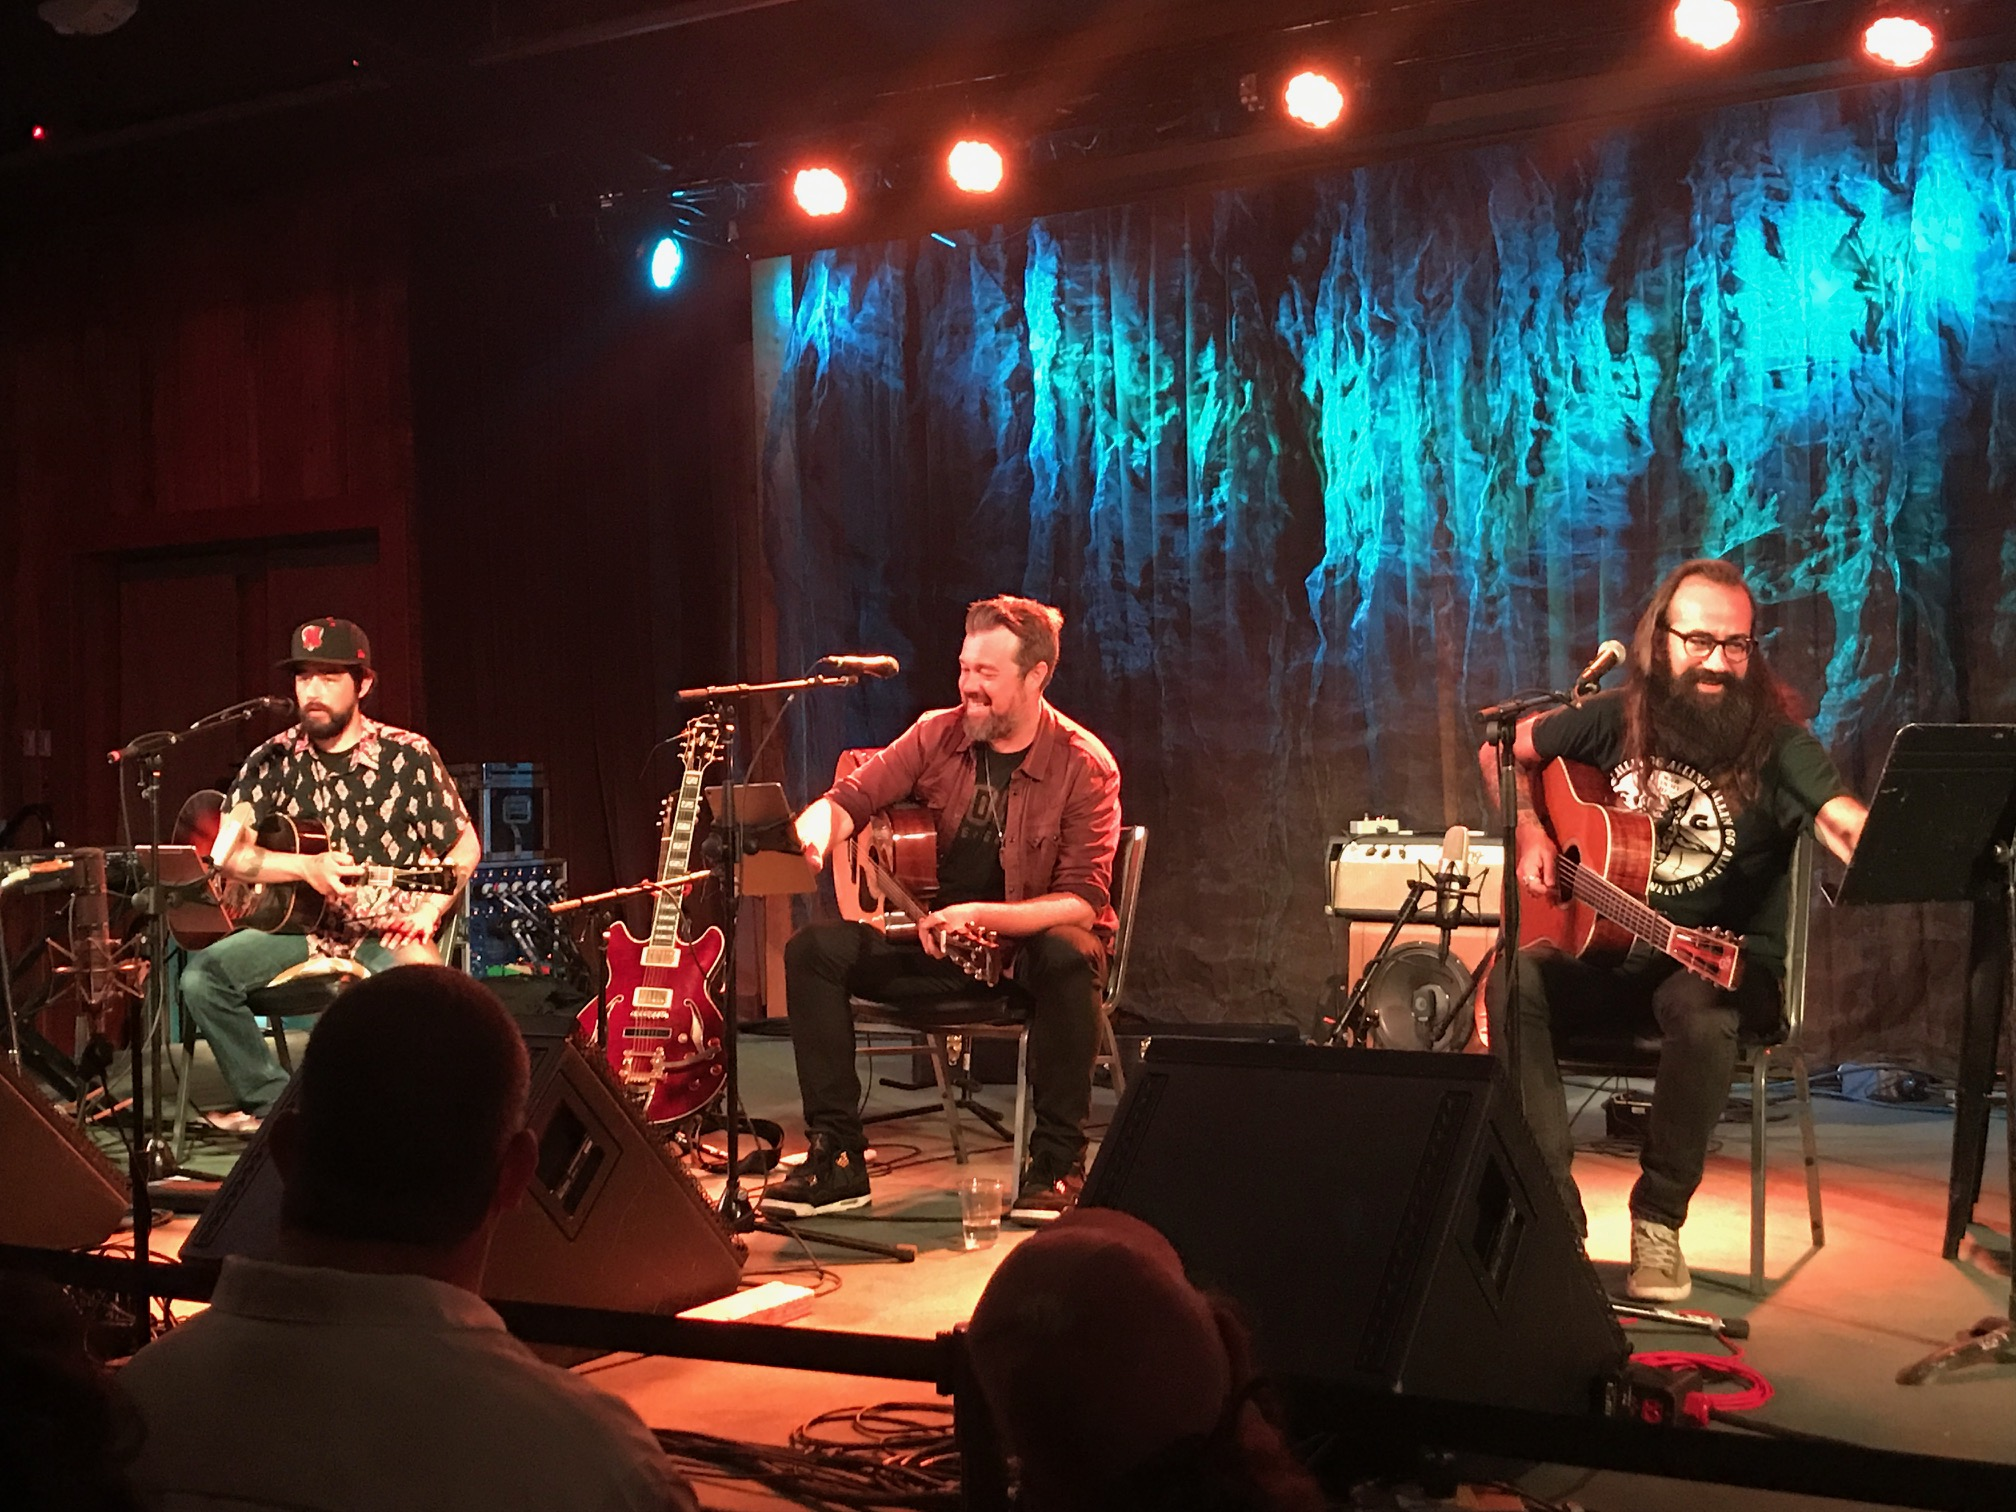 JACKIE GREENE, ERIC KRASNO and ROSS JAMES TREAT CROWD TO INTIMATE EVENING AT TERRAPIN CROSSROADS